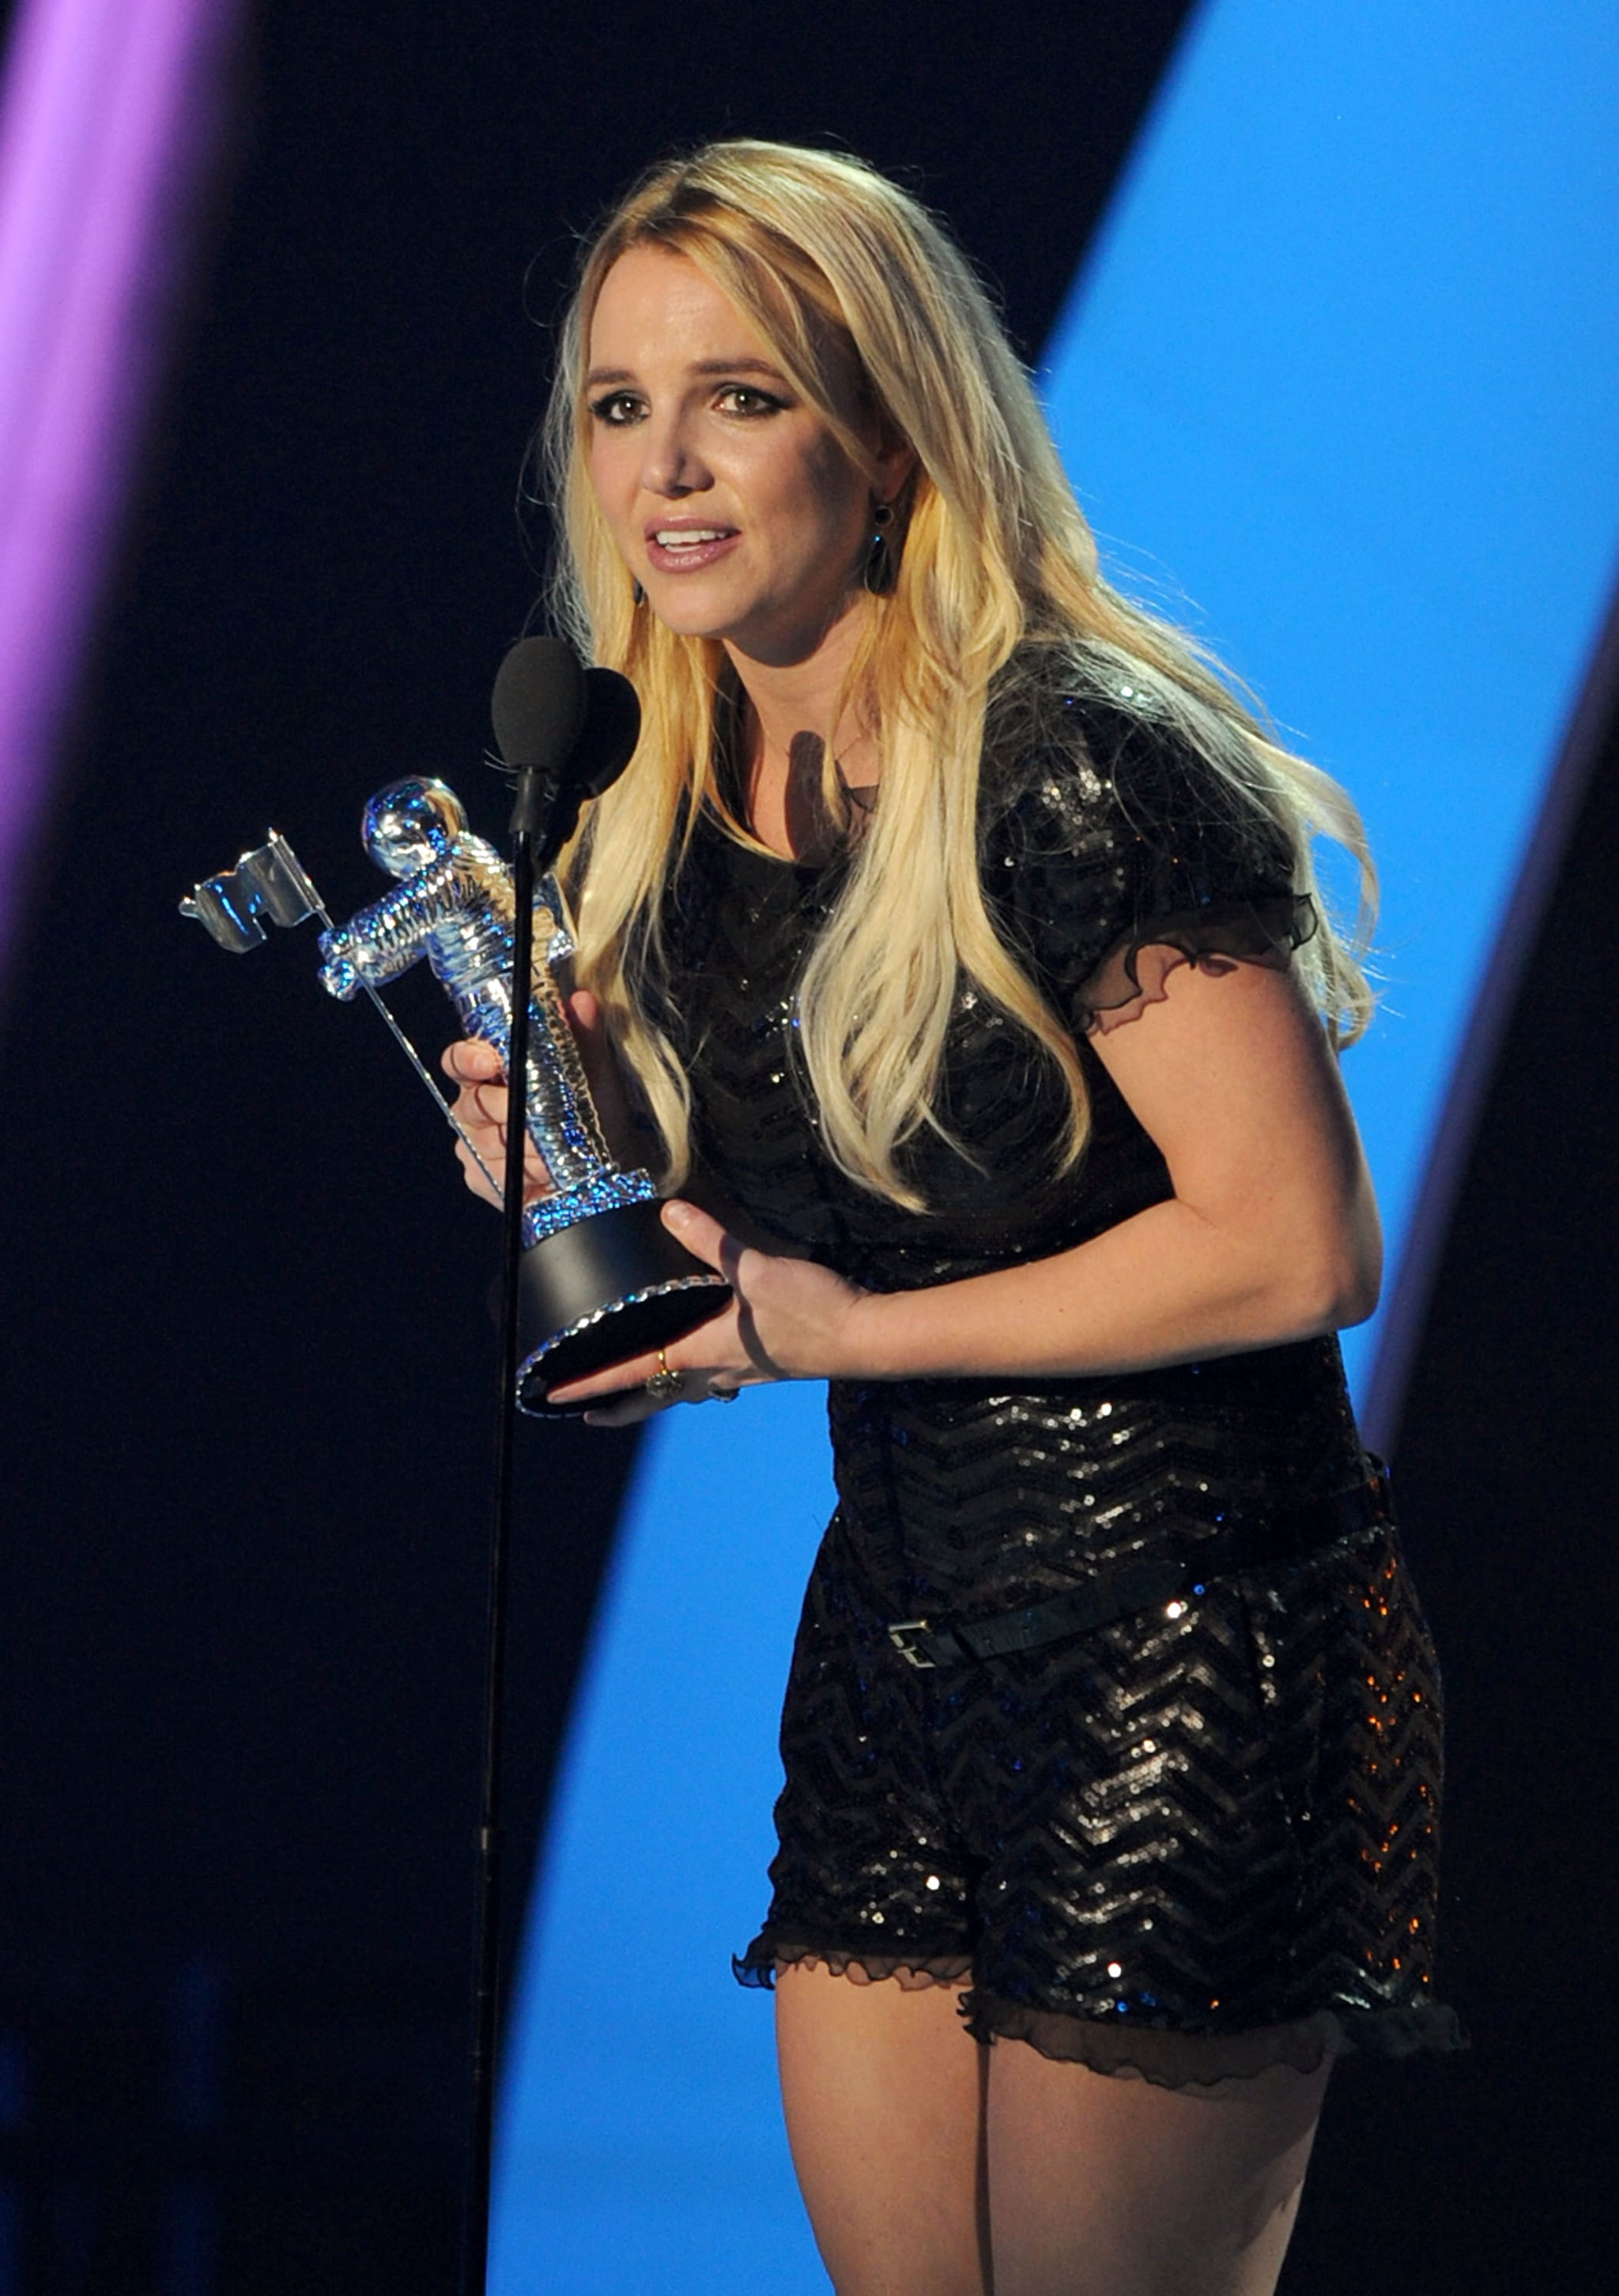 Pictures From 2011 MTV Video Music Awards Show Including ...